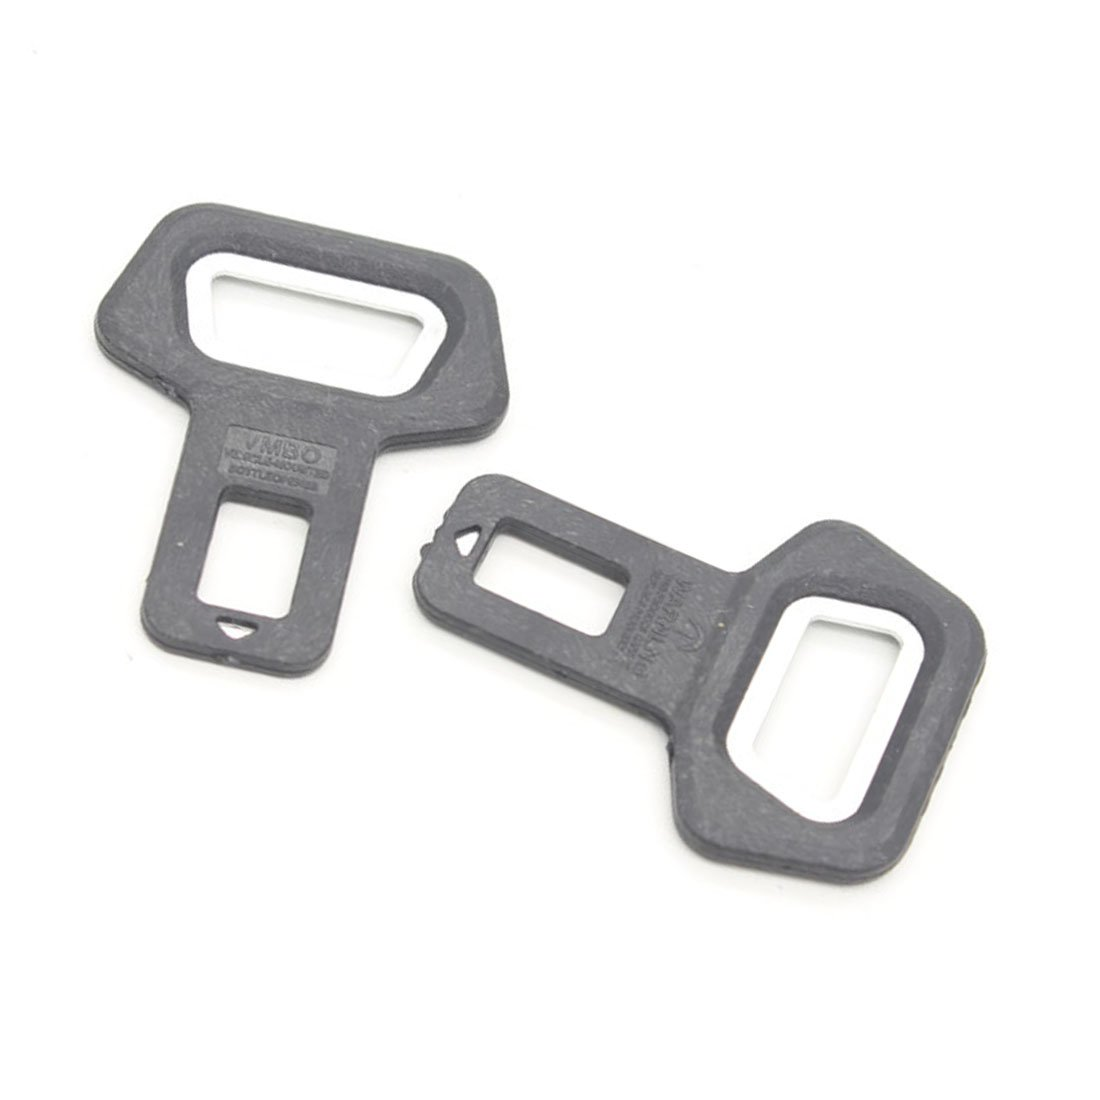 2pcs Car Metal Safety Seat Belt Buckles And Home Dual-Use Bottle Opener RGAta